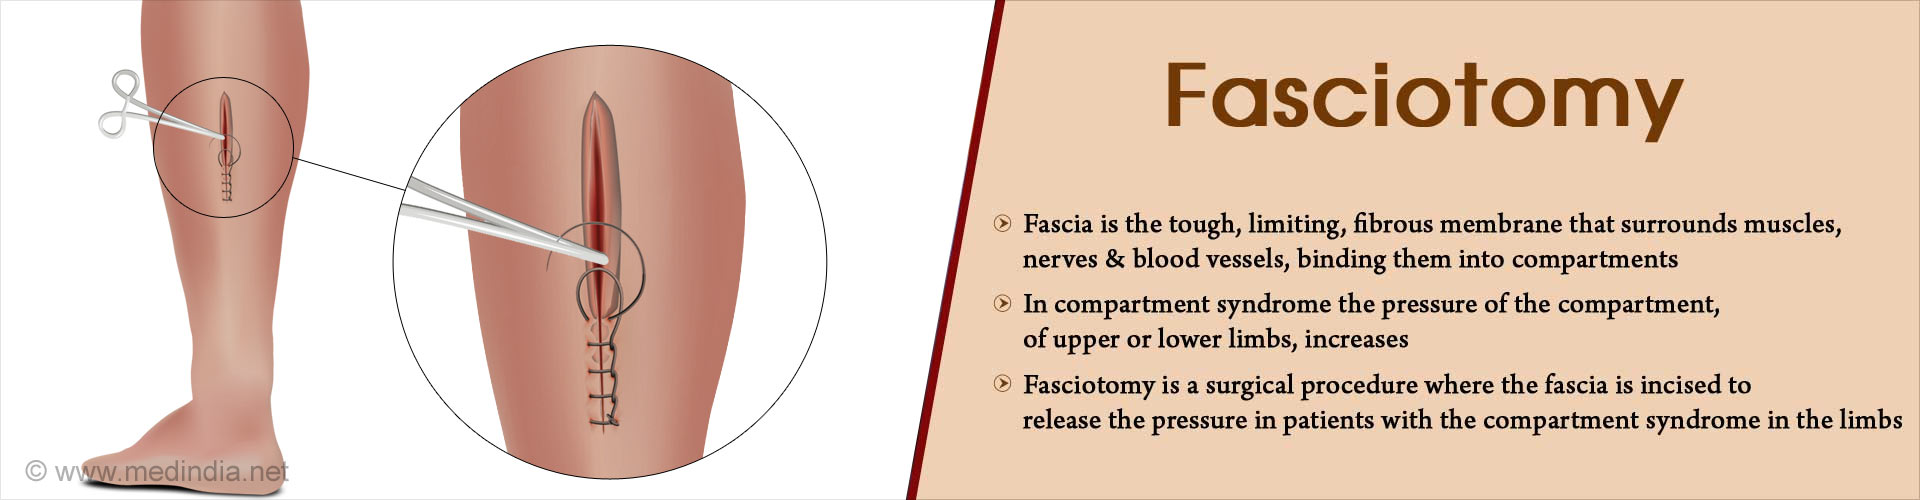 Fasciotomy - Surgical Procedure